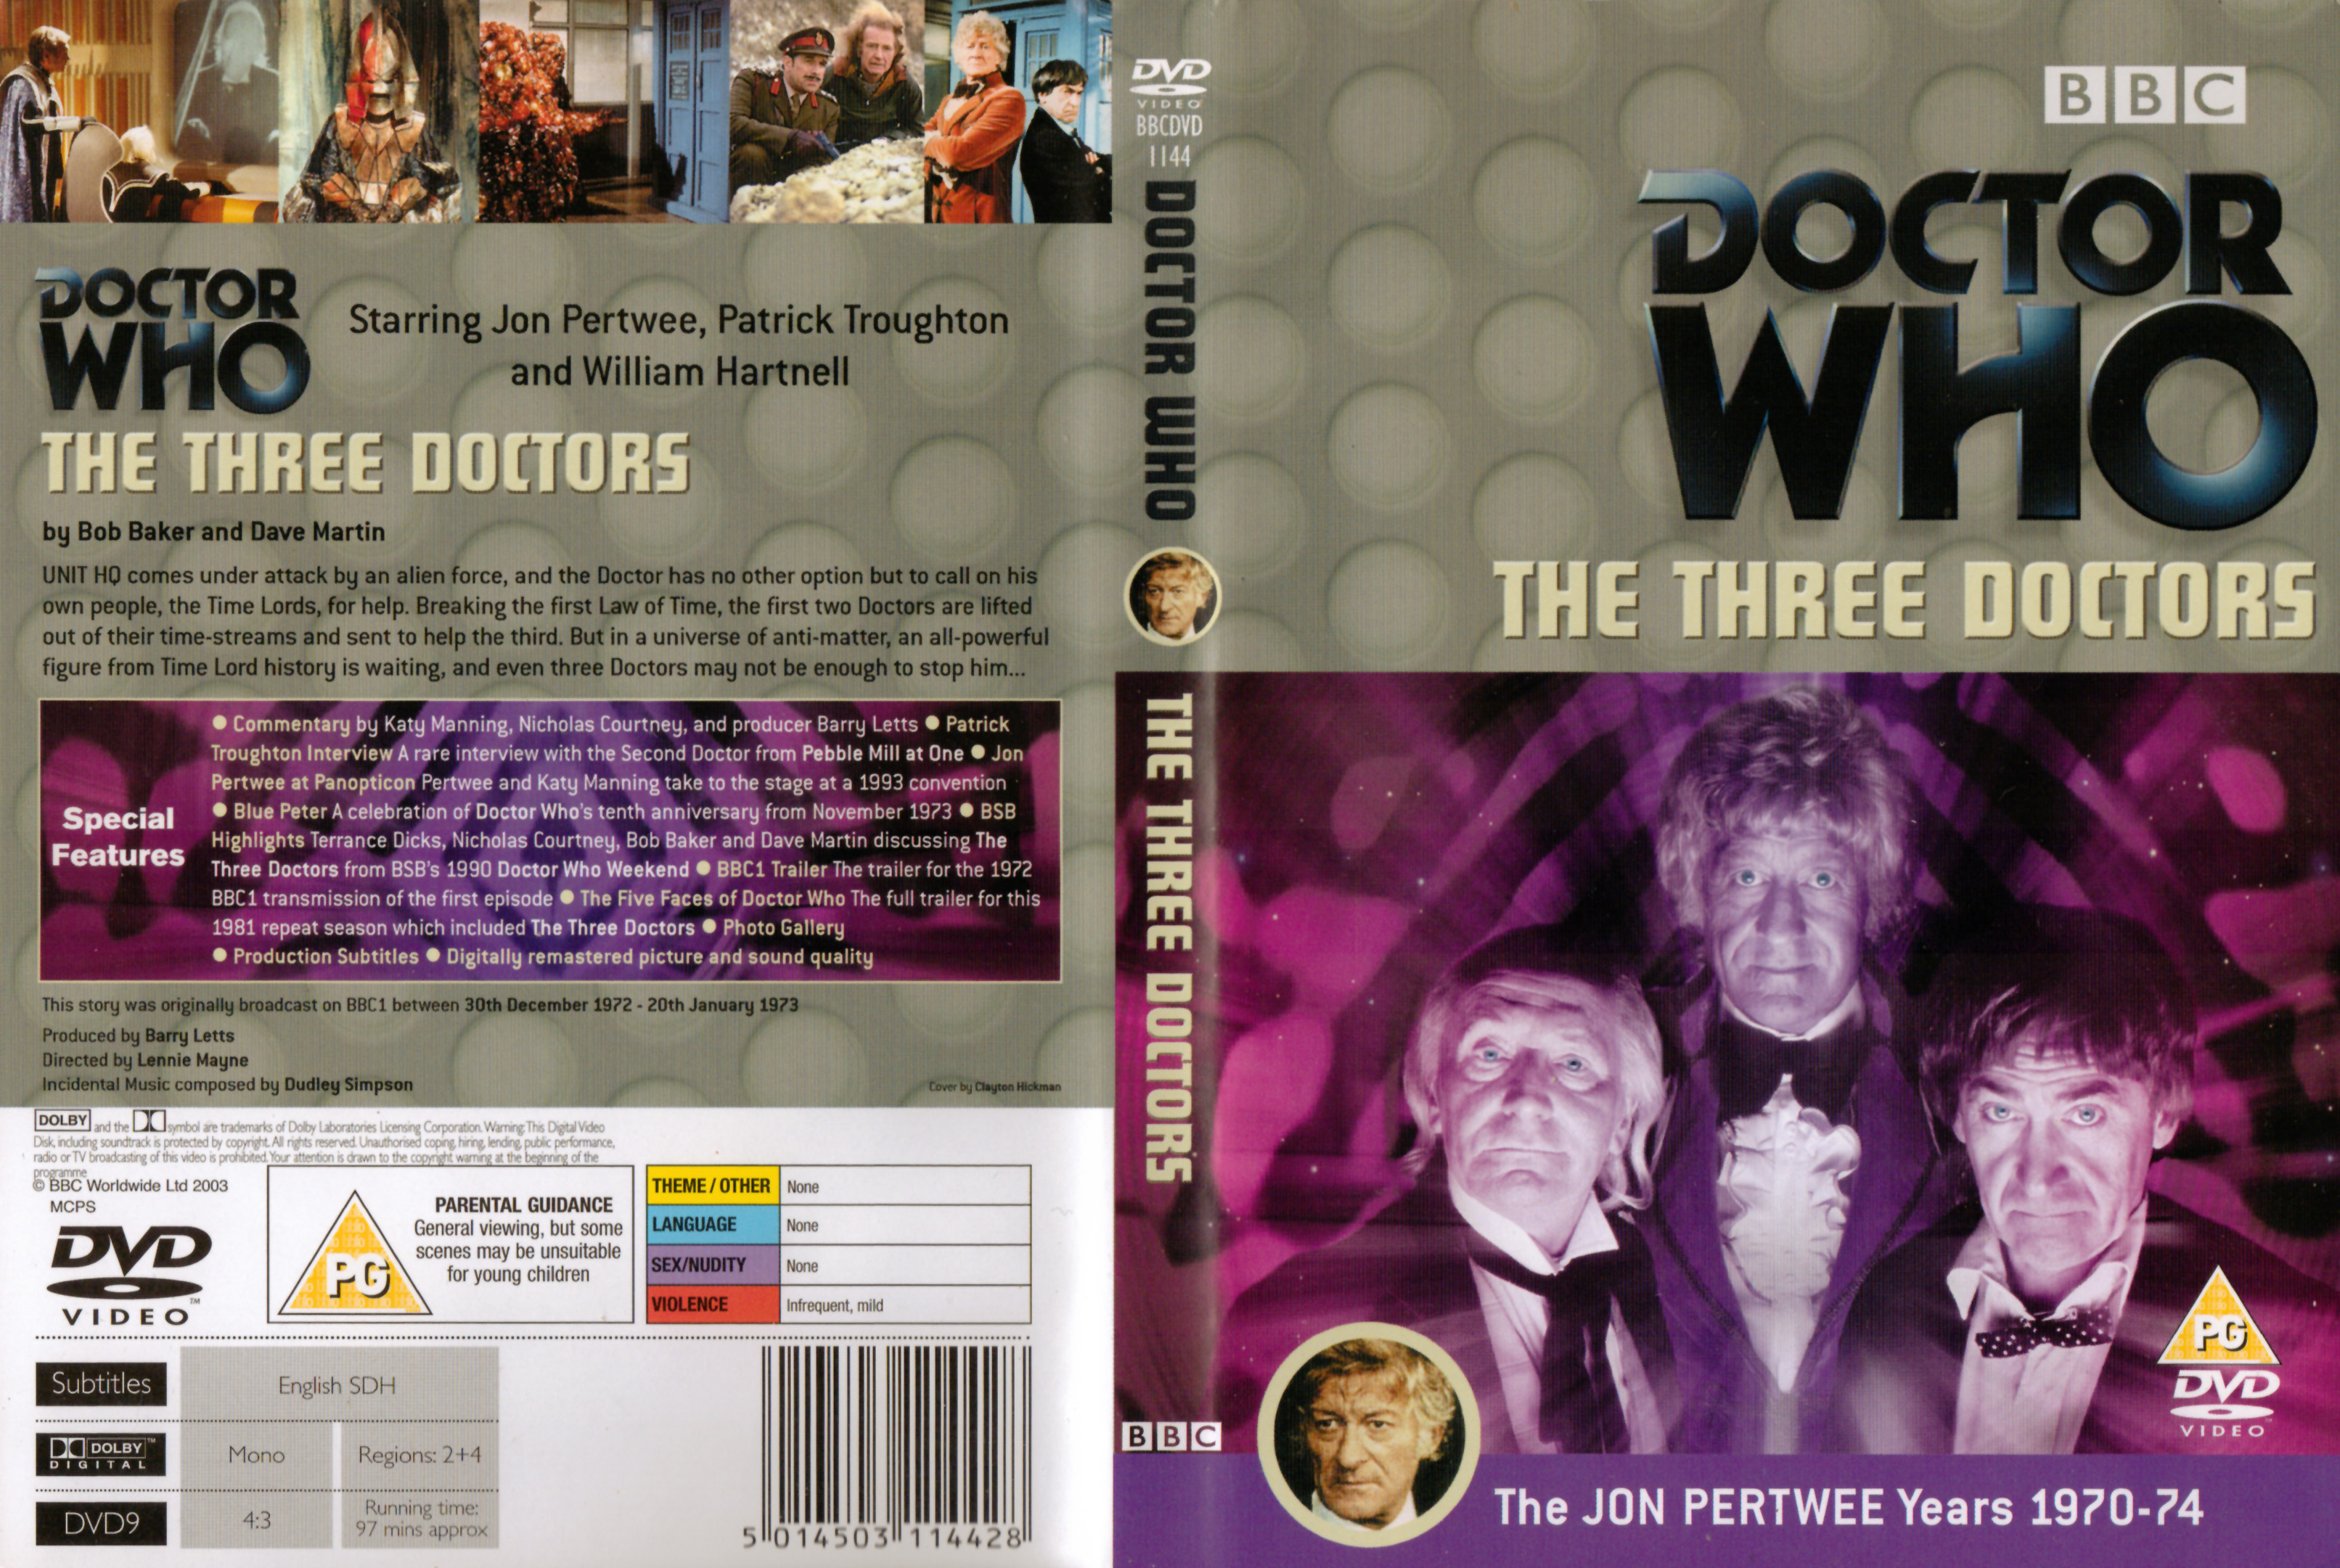 The Three Doctors DVD